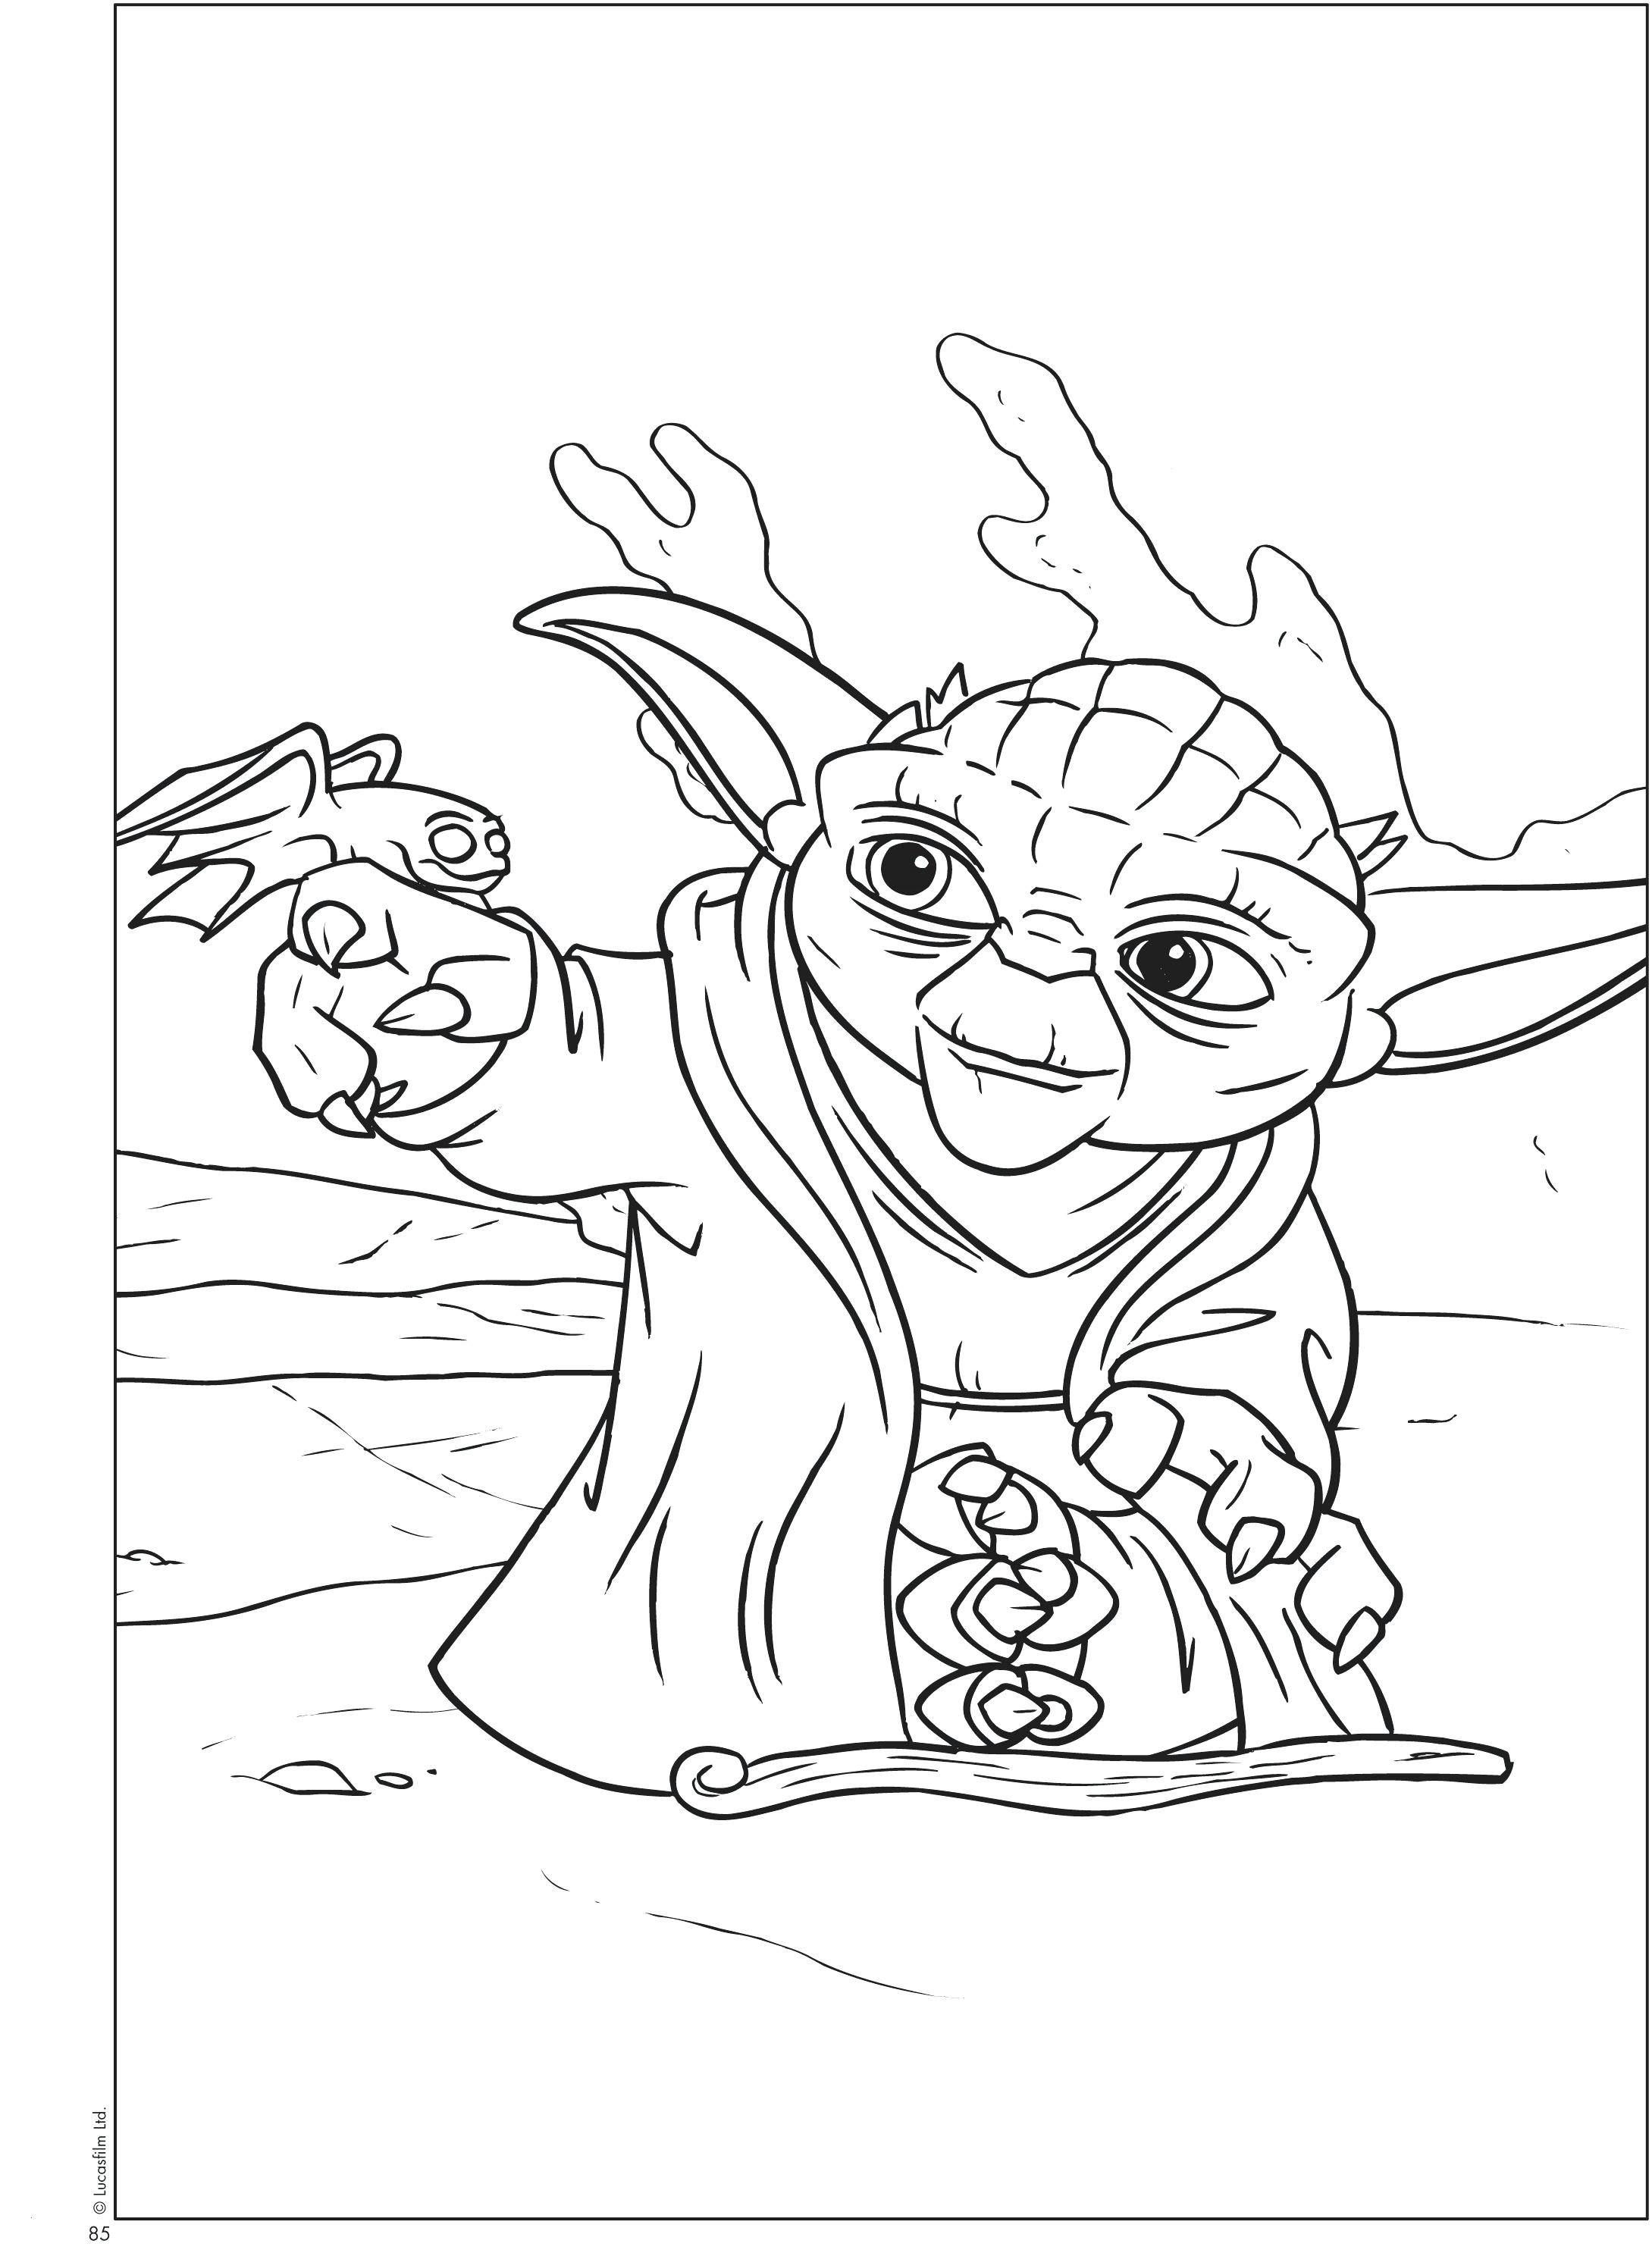 Christmas Coloring Pages Star Wars With Games Lovely 6